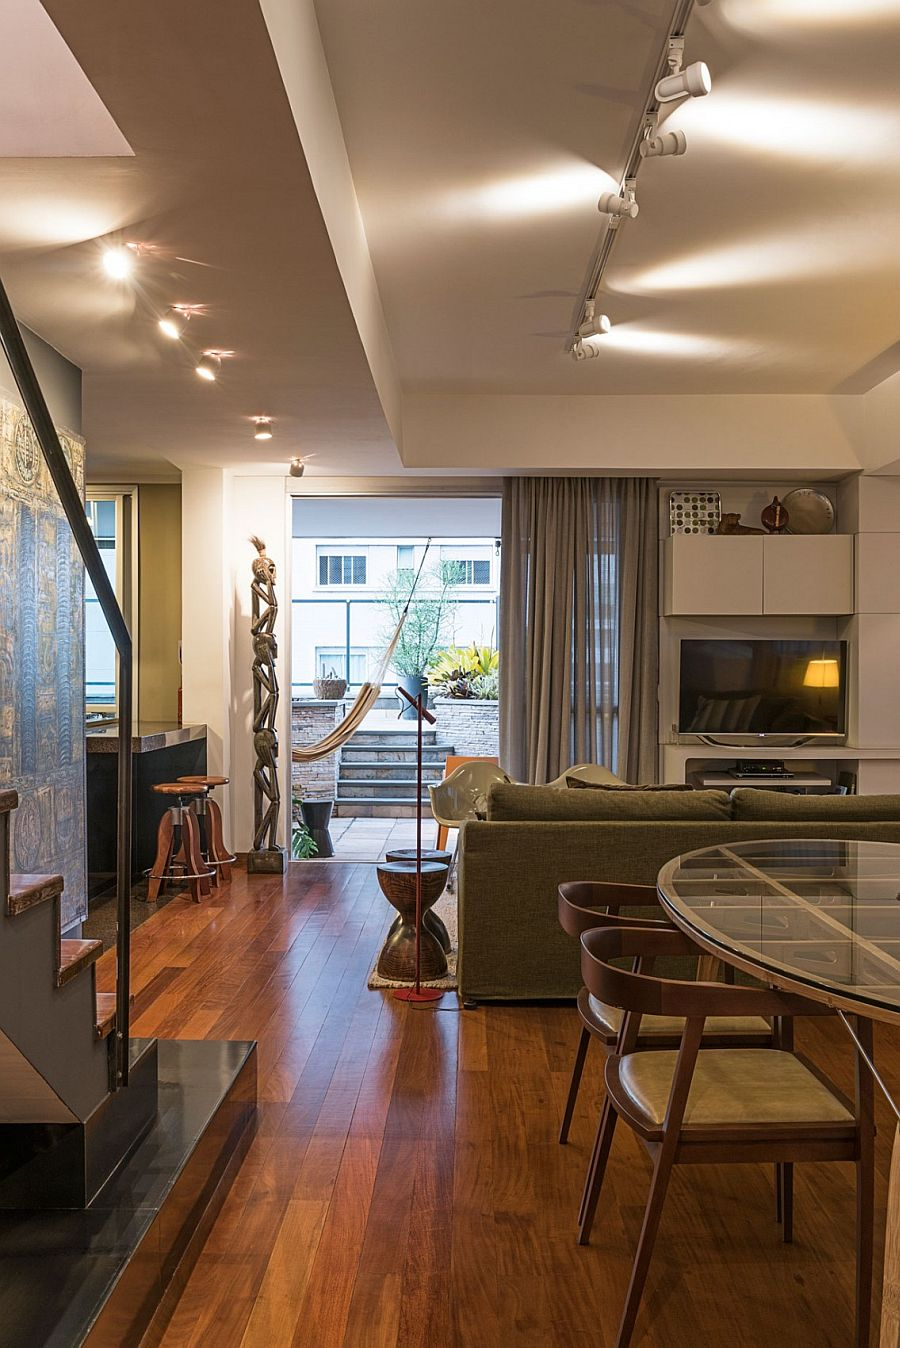 50s D 233 Cor Meets Modern Flair Inside Rejuvenated Brazilian